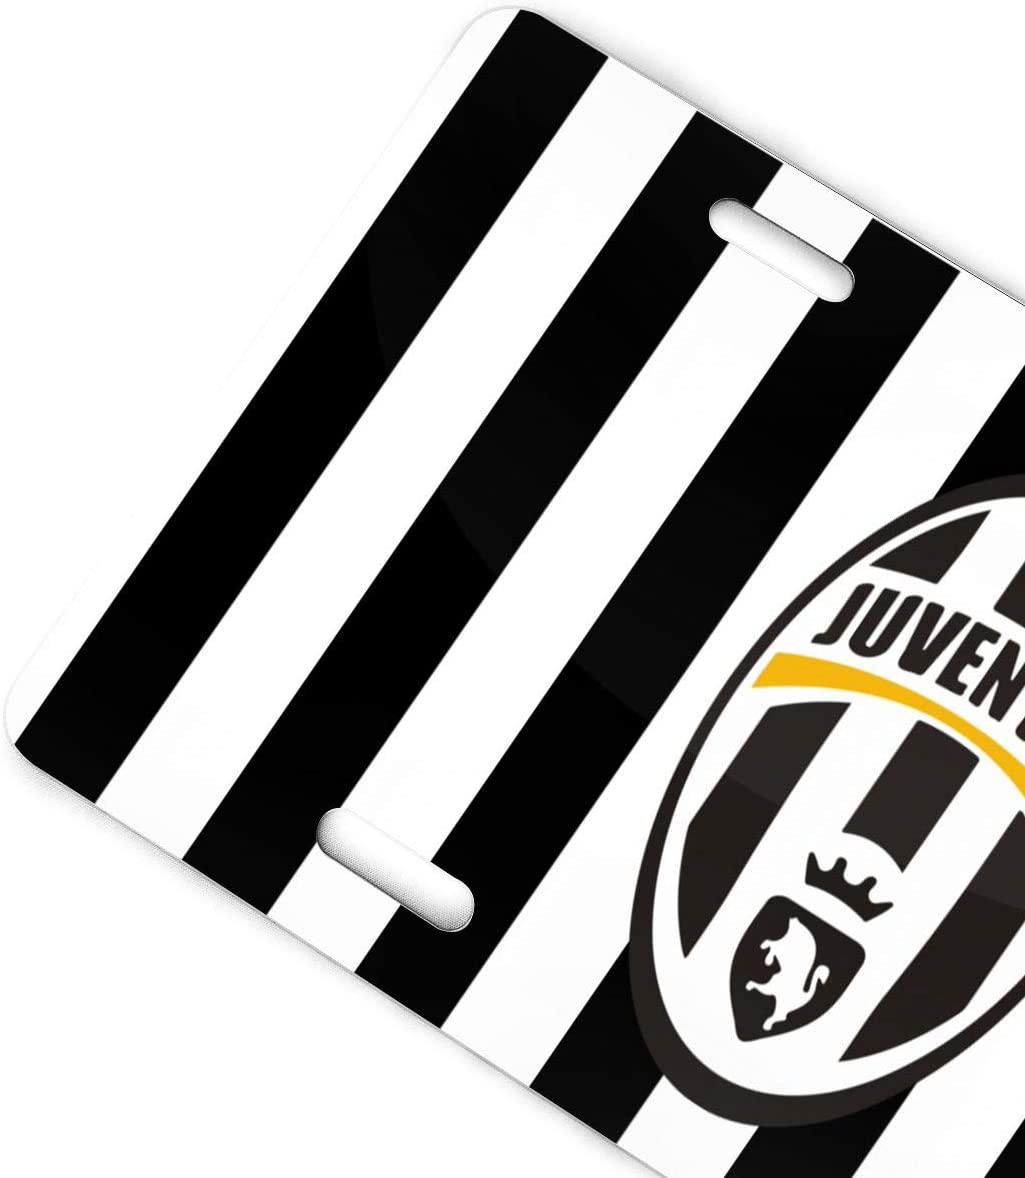 AQC16FC Football Team Decorative Car Front License Plate,Vanity Tag,Metal Car Plate,Aluminum Sports Fan License Plate Covers,6x12 Inch 4 Holes